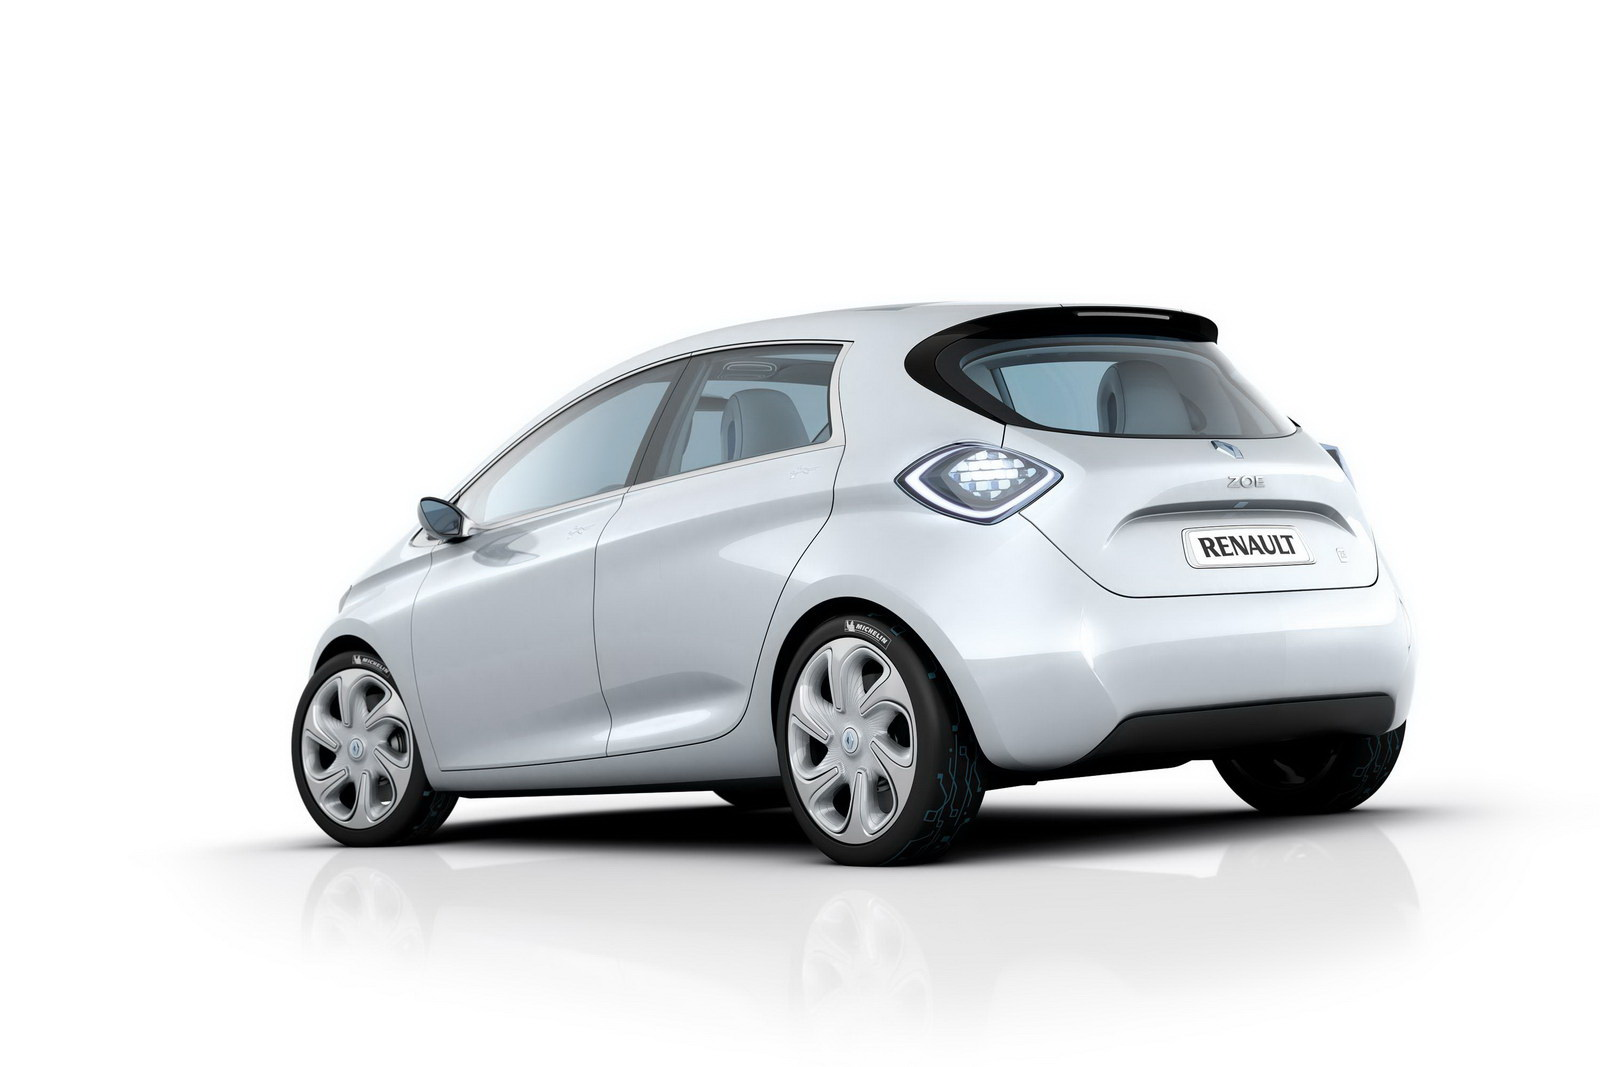 Renault 1 Renault to Launch All Electric Twingo in 2014, Zoe Z.E. slated to release in 2012